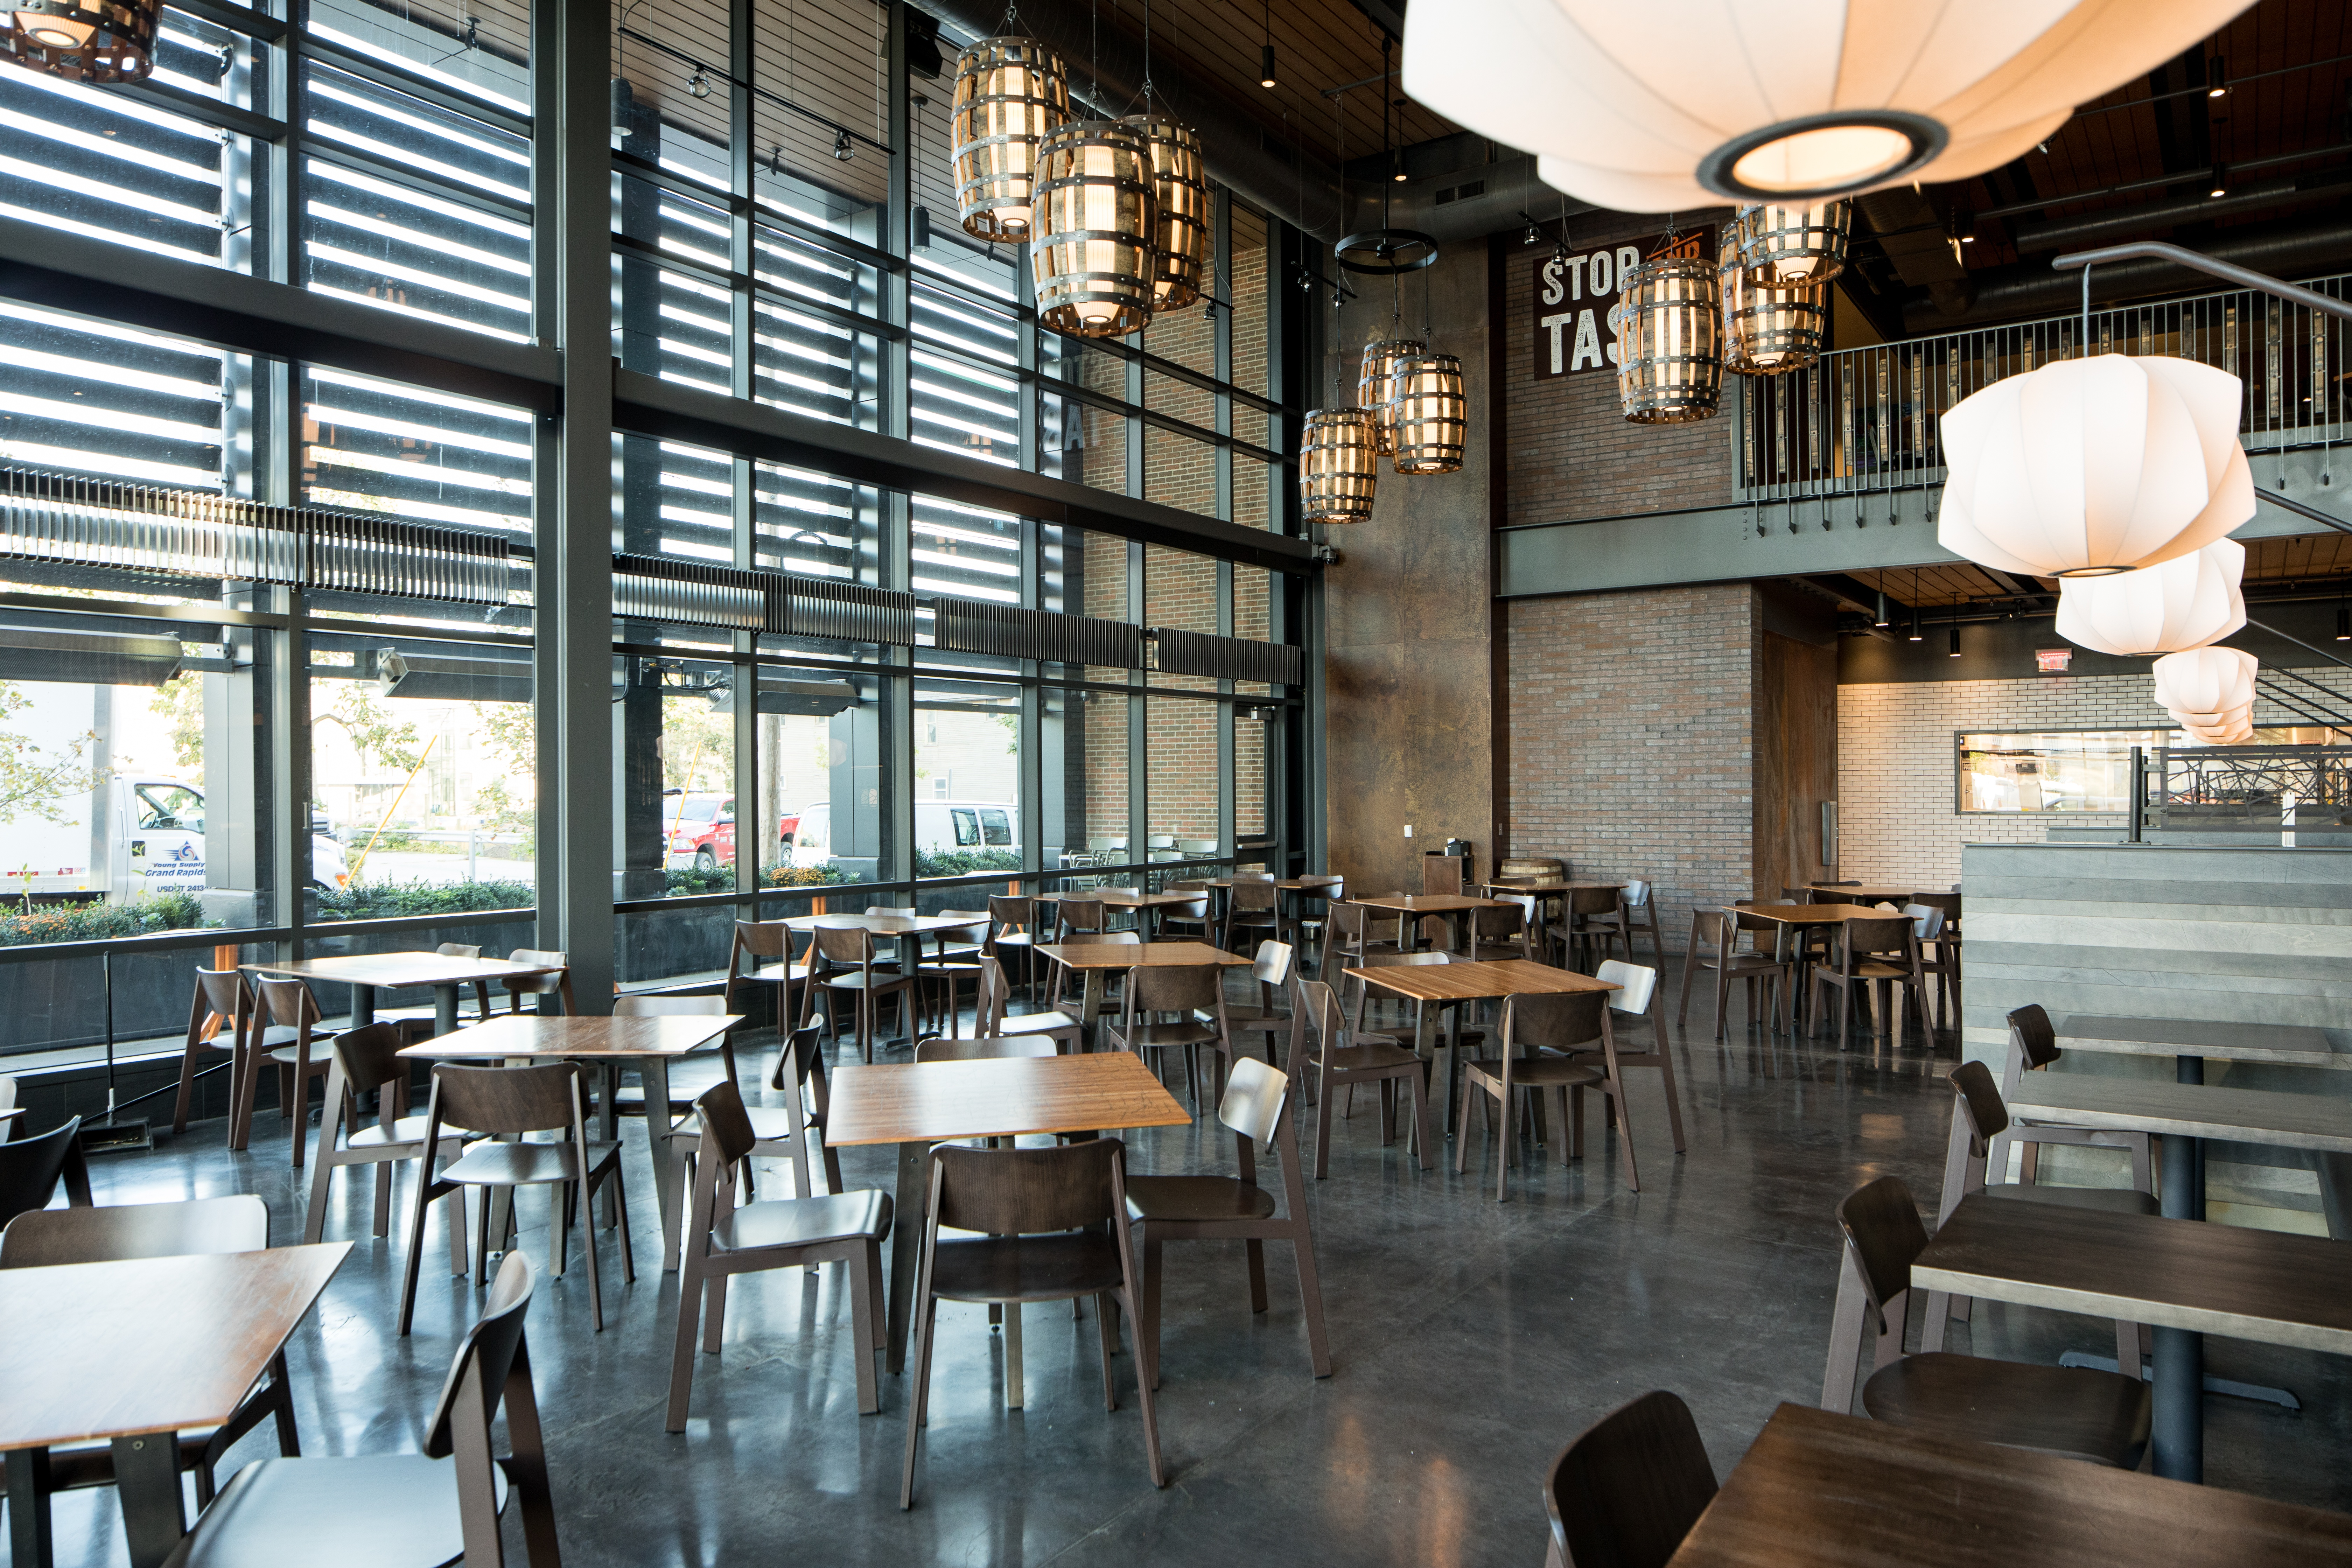 restaurant design ideas: how to do rustic without dating your